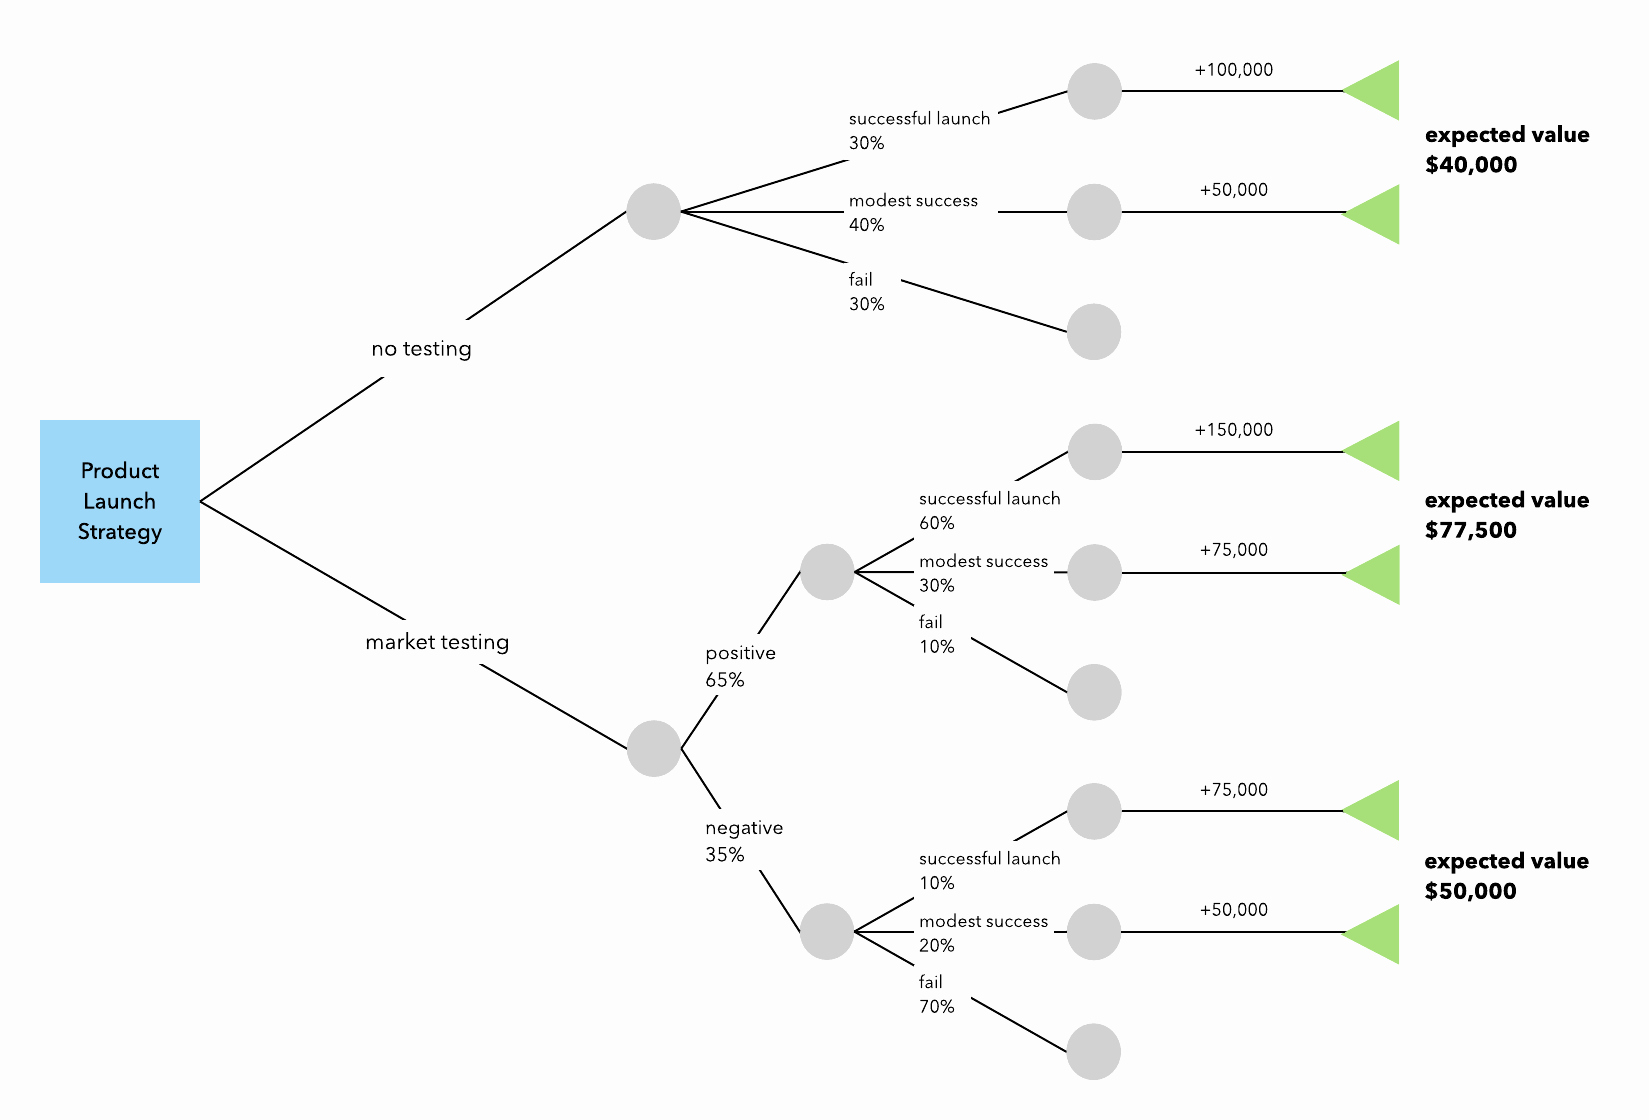 Free Decision Tree Template Elegant How to Make A Decision Tree In Excel A Free Template